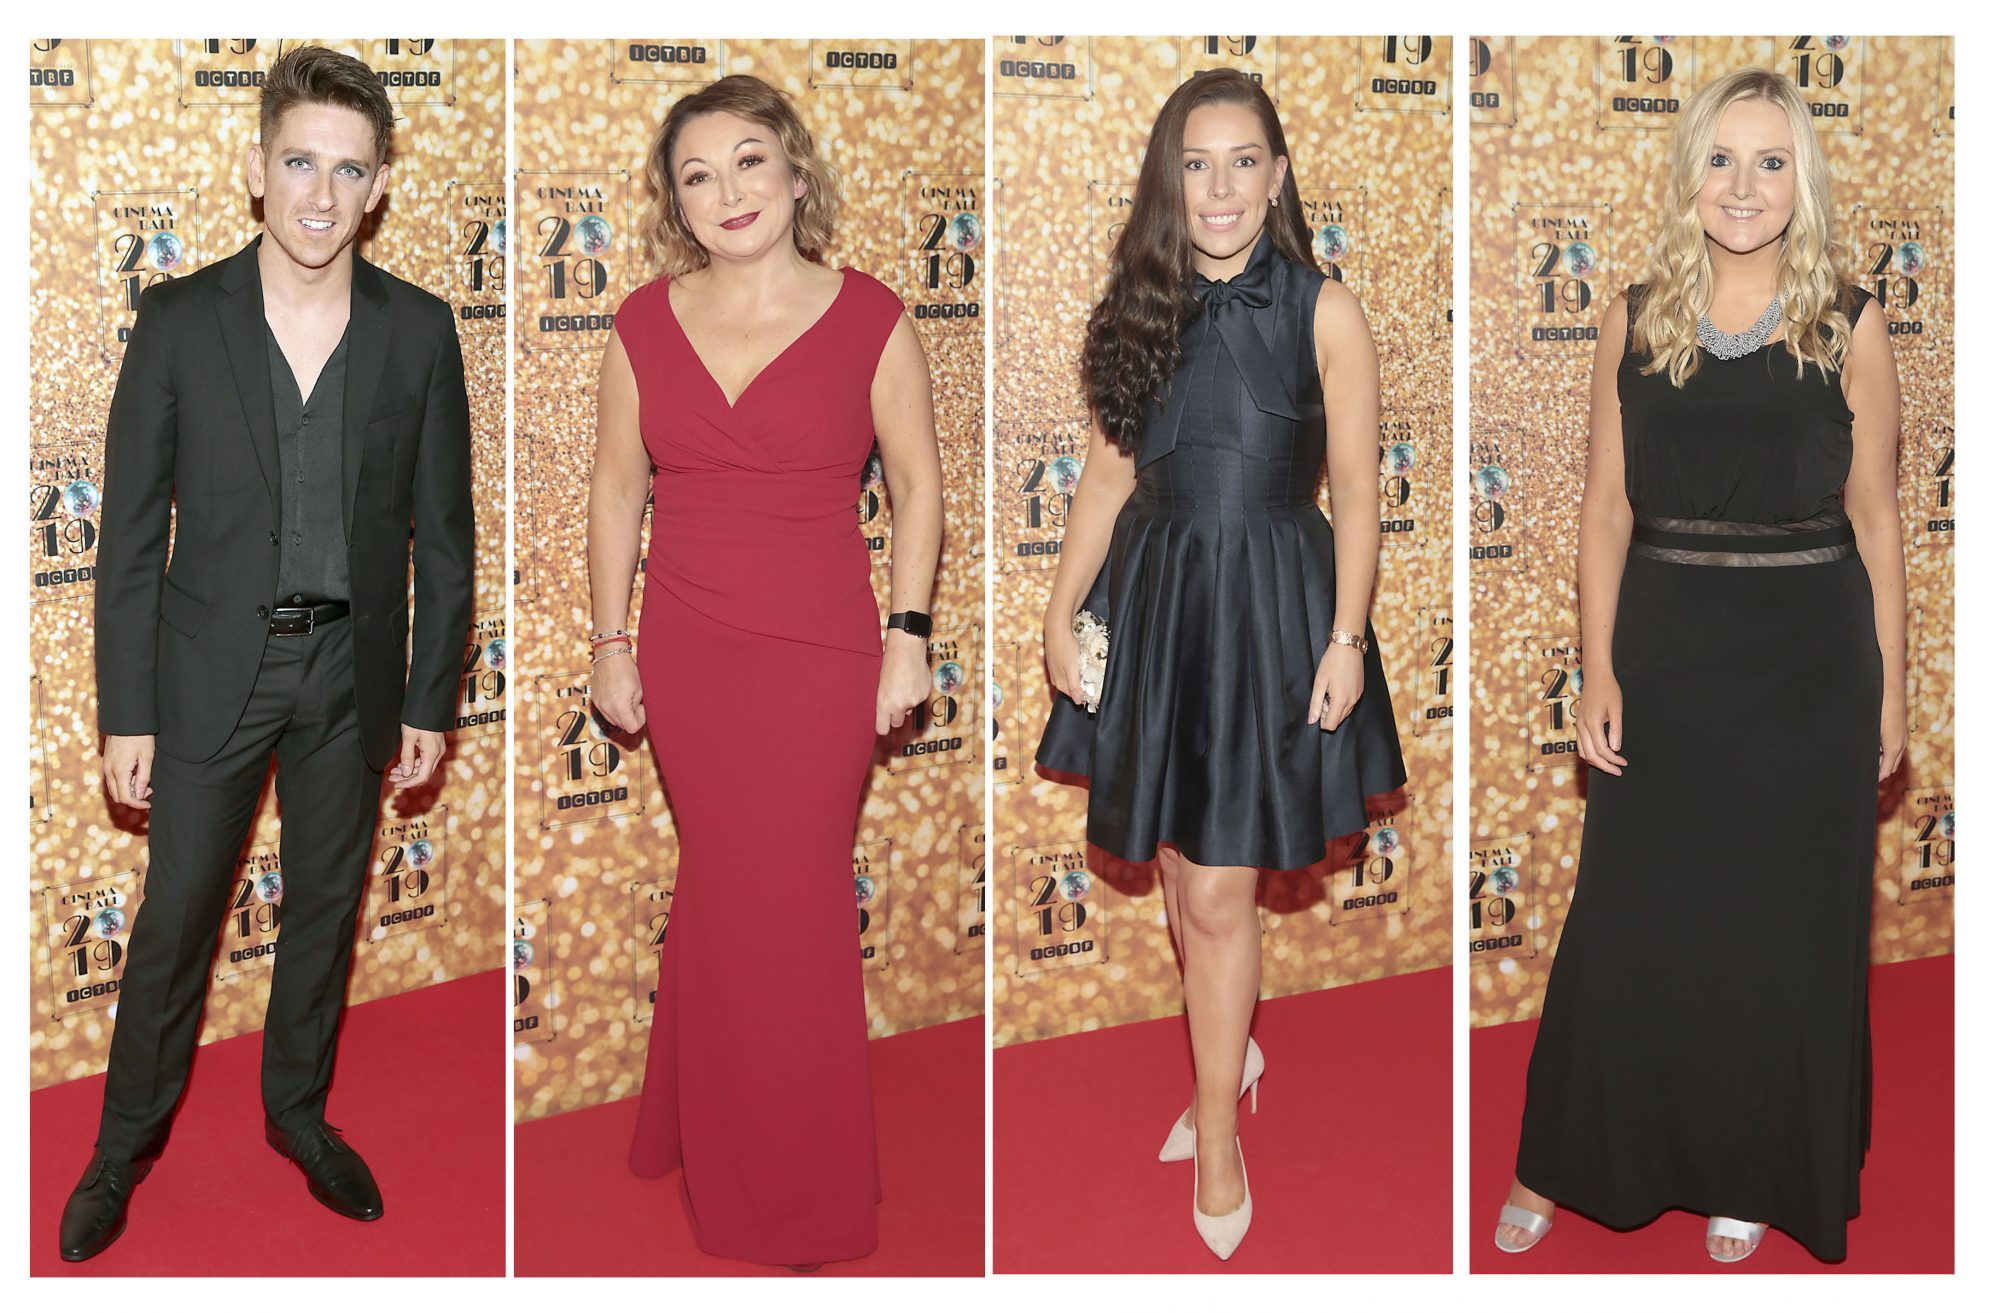 Stephen Byrne, Niamh McCaul,Tara Moran and Alison Keegan pictured at the Irish Cinema Ball 2019 in aid of the Irish Cinematograph Trade Benevolent Fund (ICTBF ) at The Shelbourne Hotel, Dublin This year's theme was the iconic 'Studio 54'. Pic: Brian McEvoy.